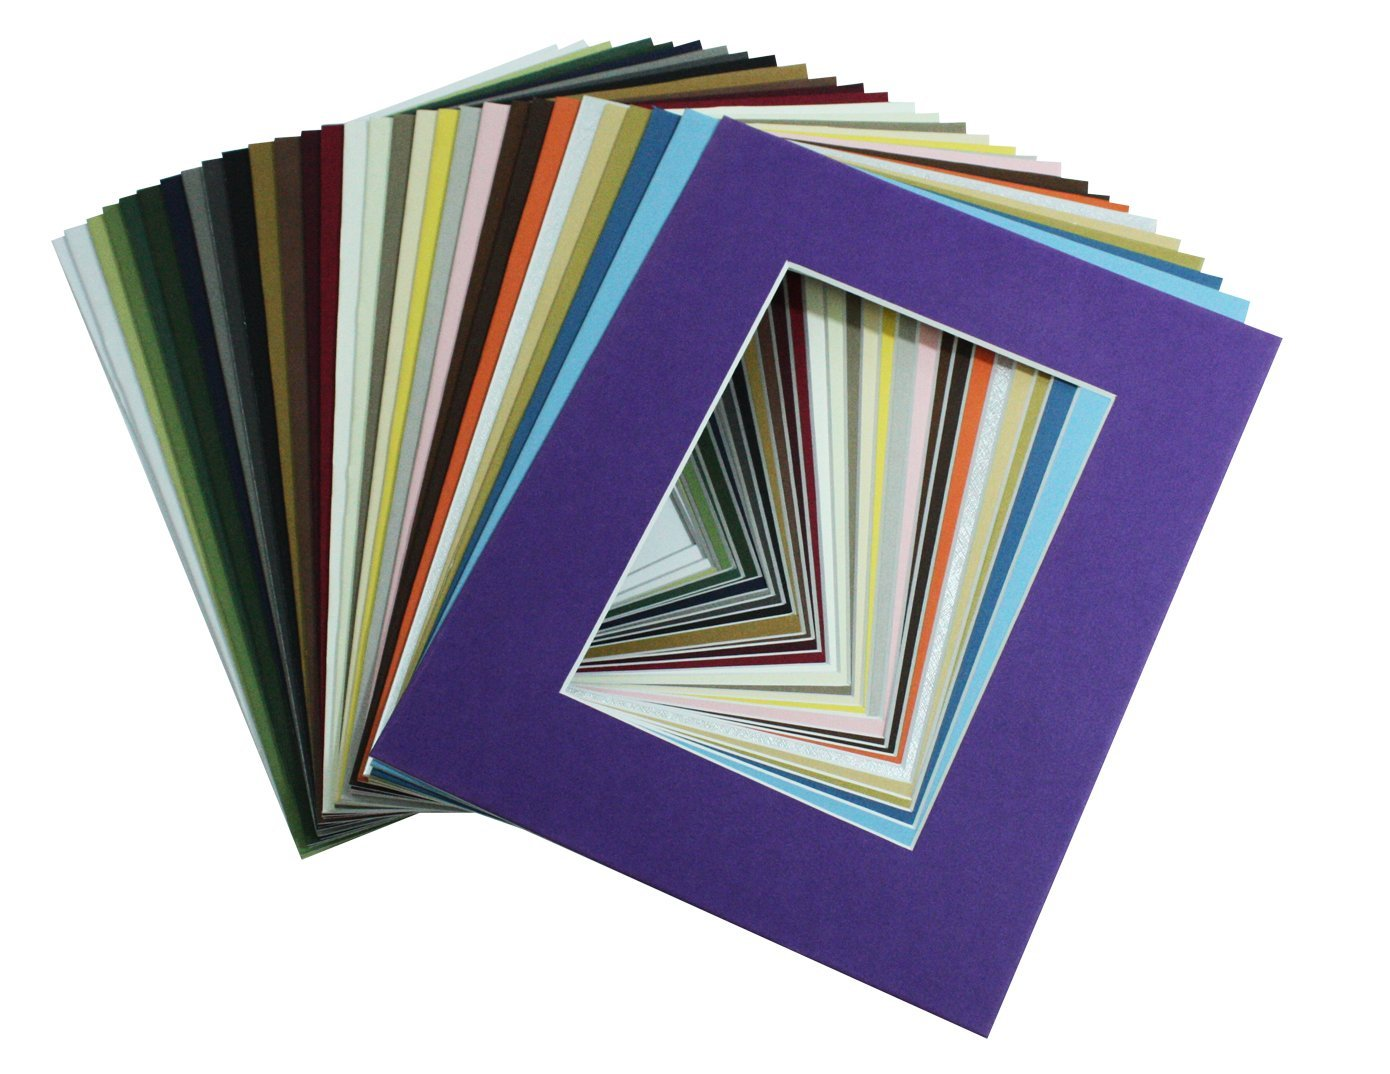 Mat Board Center, Pack of 20, 8x10 MIXED COLORS White Core Picture Mats Mattes Matting for 5x7 Photo by Mat Board Center